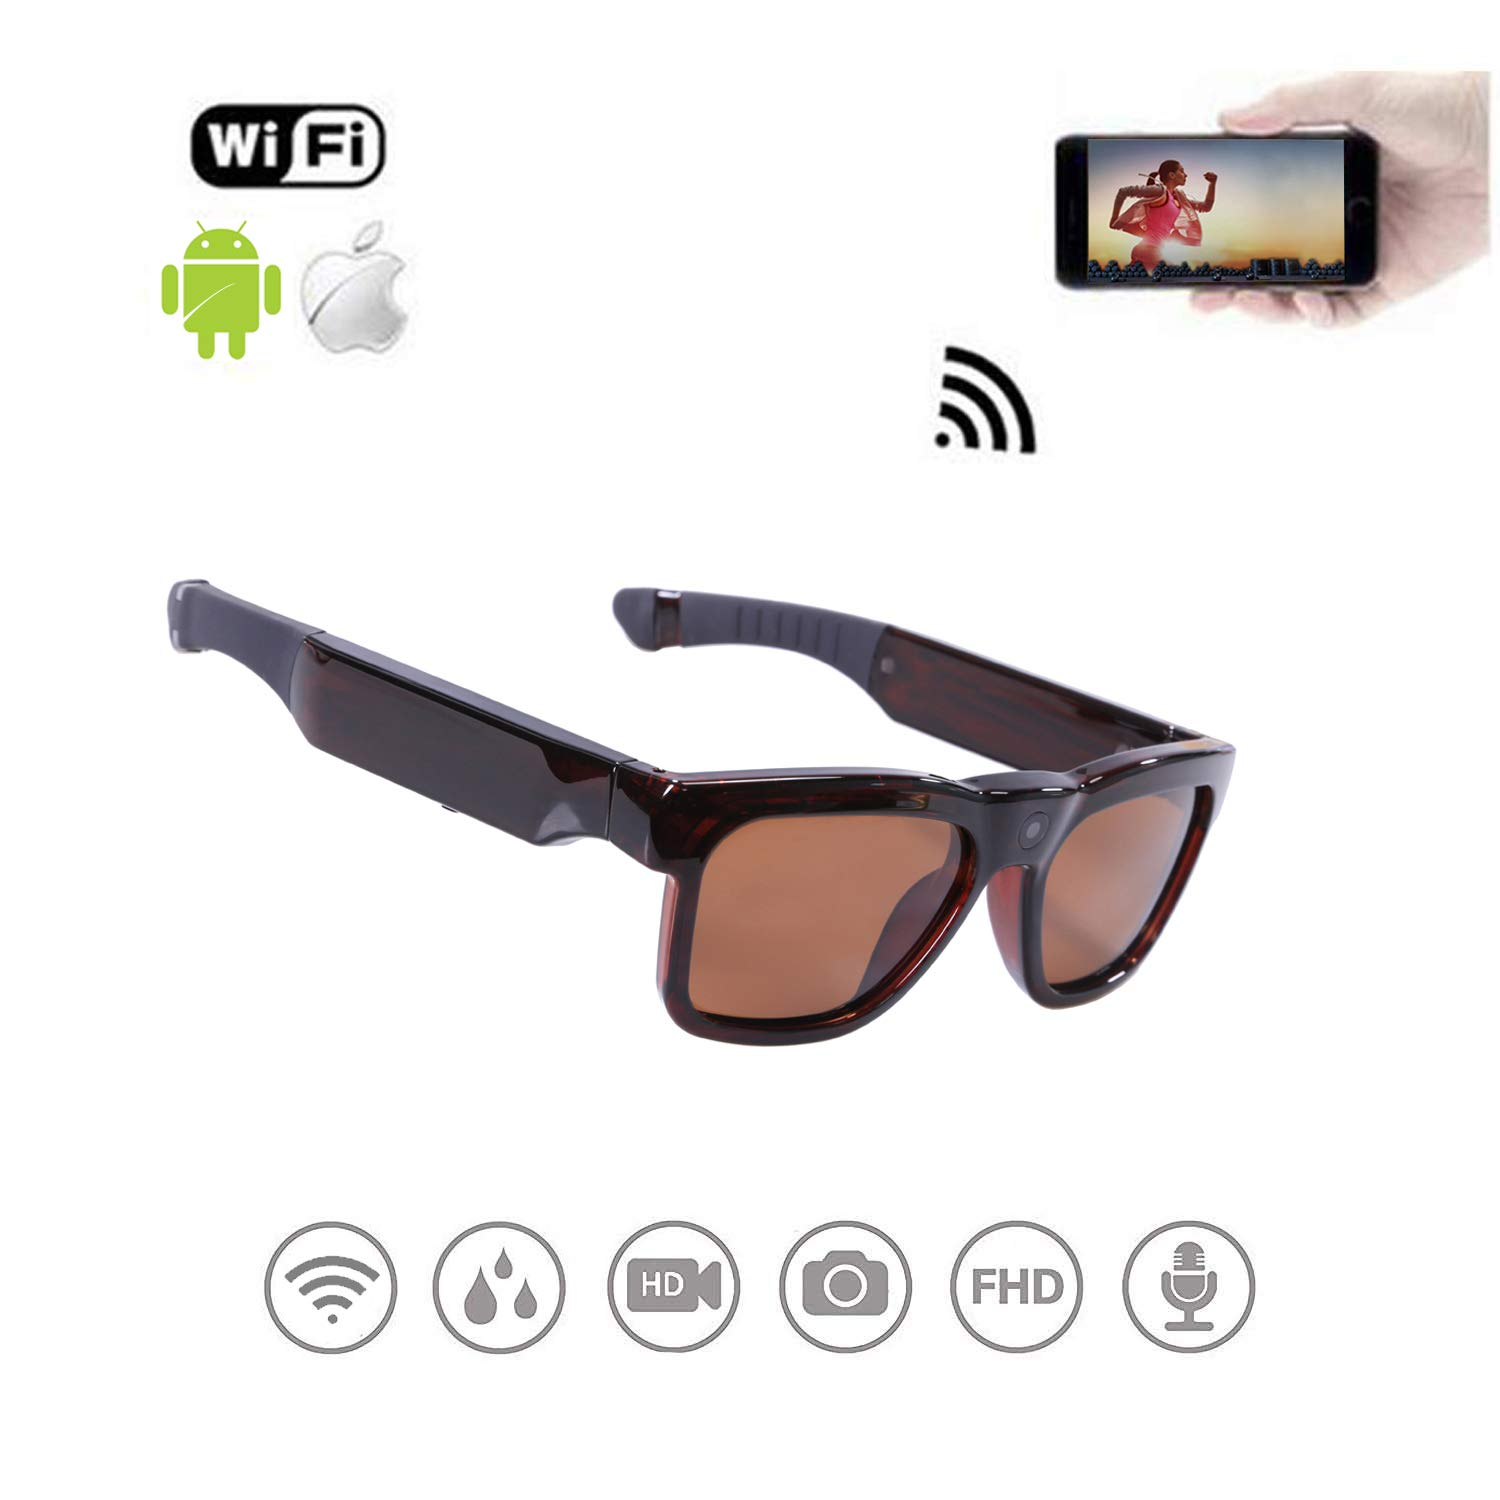 WiFi Live Streaming Video Sunglasses, Streaming Videos & Photos from Glasses to Mobile Phone by App with Ultra Full HD Camera, Built-in 32GB Memory and Polarized UV400 Protection Sunglasses by OhO sunshine